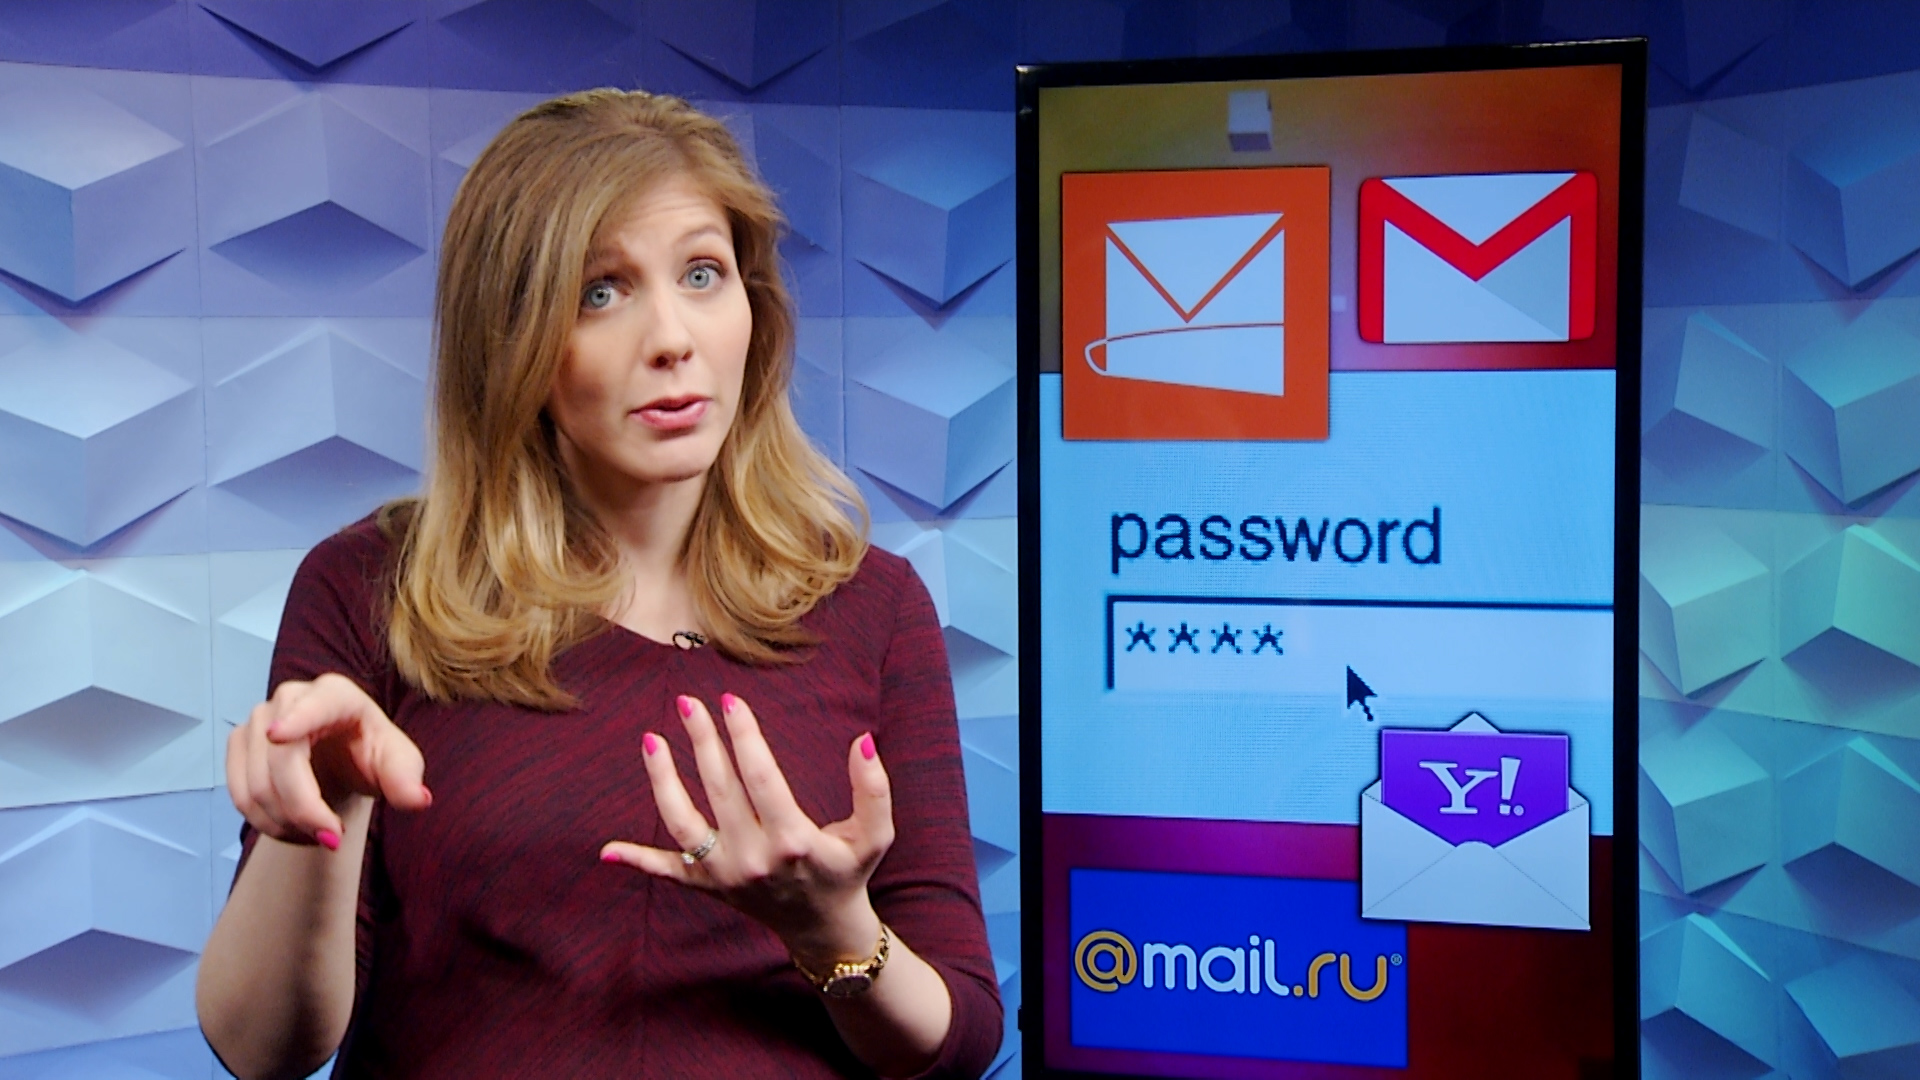 Video: Hacker gives away millions of email passwords for a few compliments